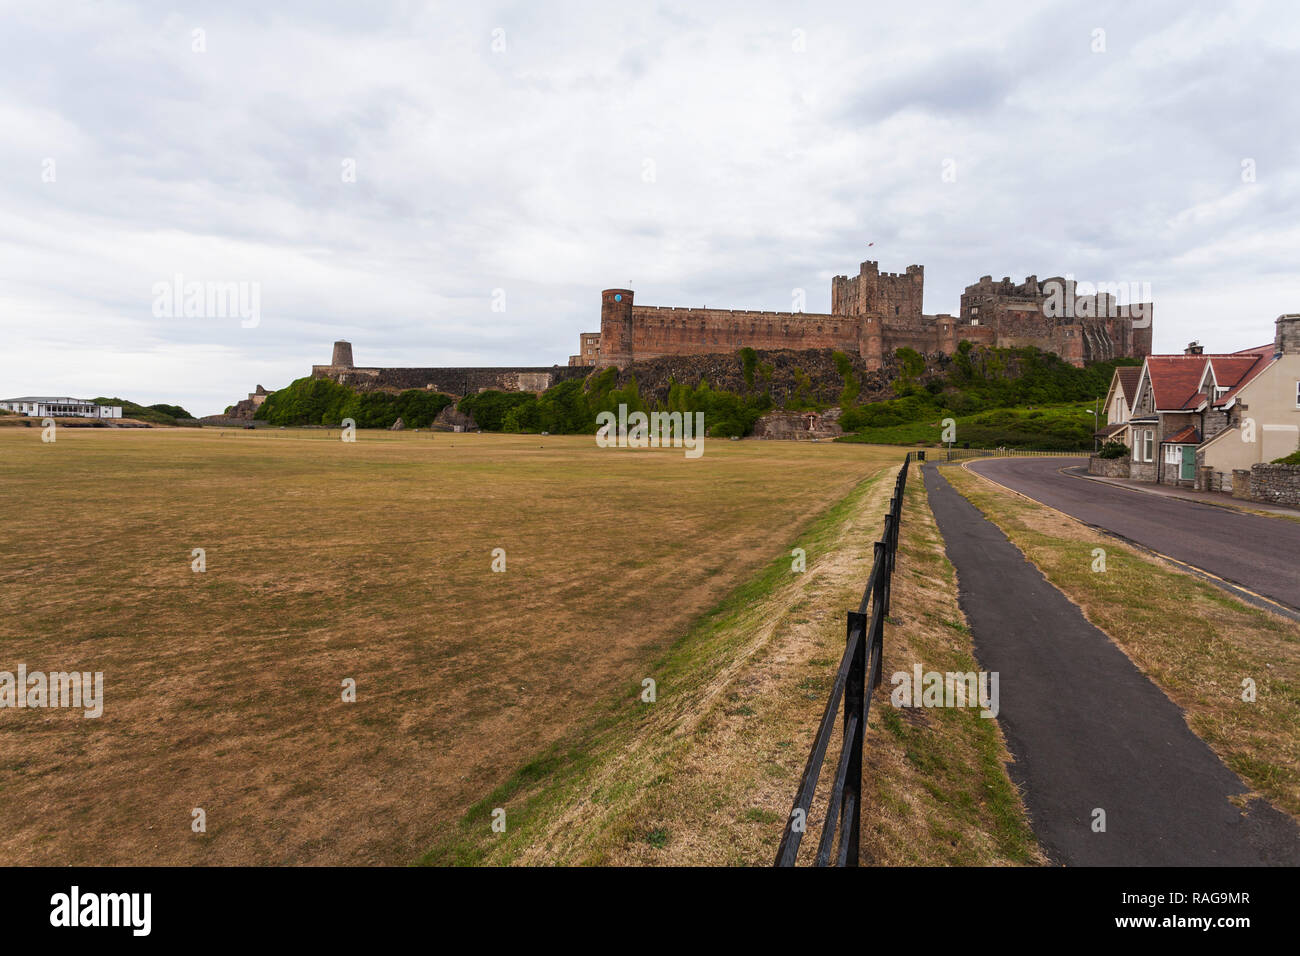 The approach road to Bamburgh Castle in Northumberland,England,UK - Stock Image